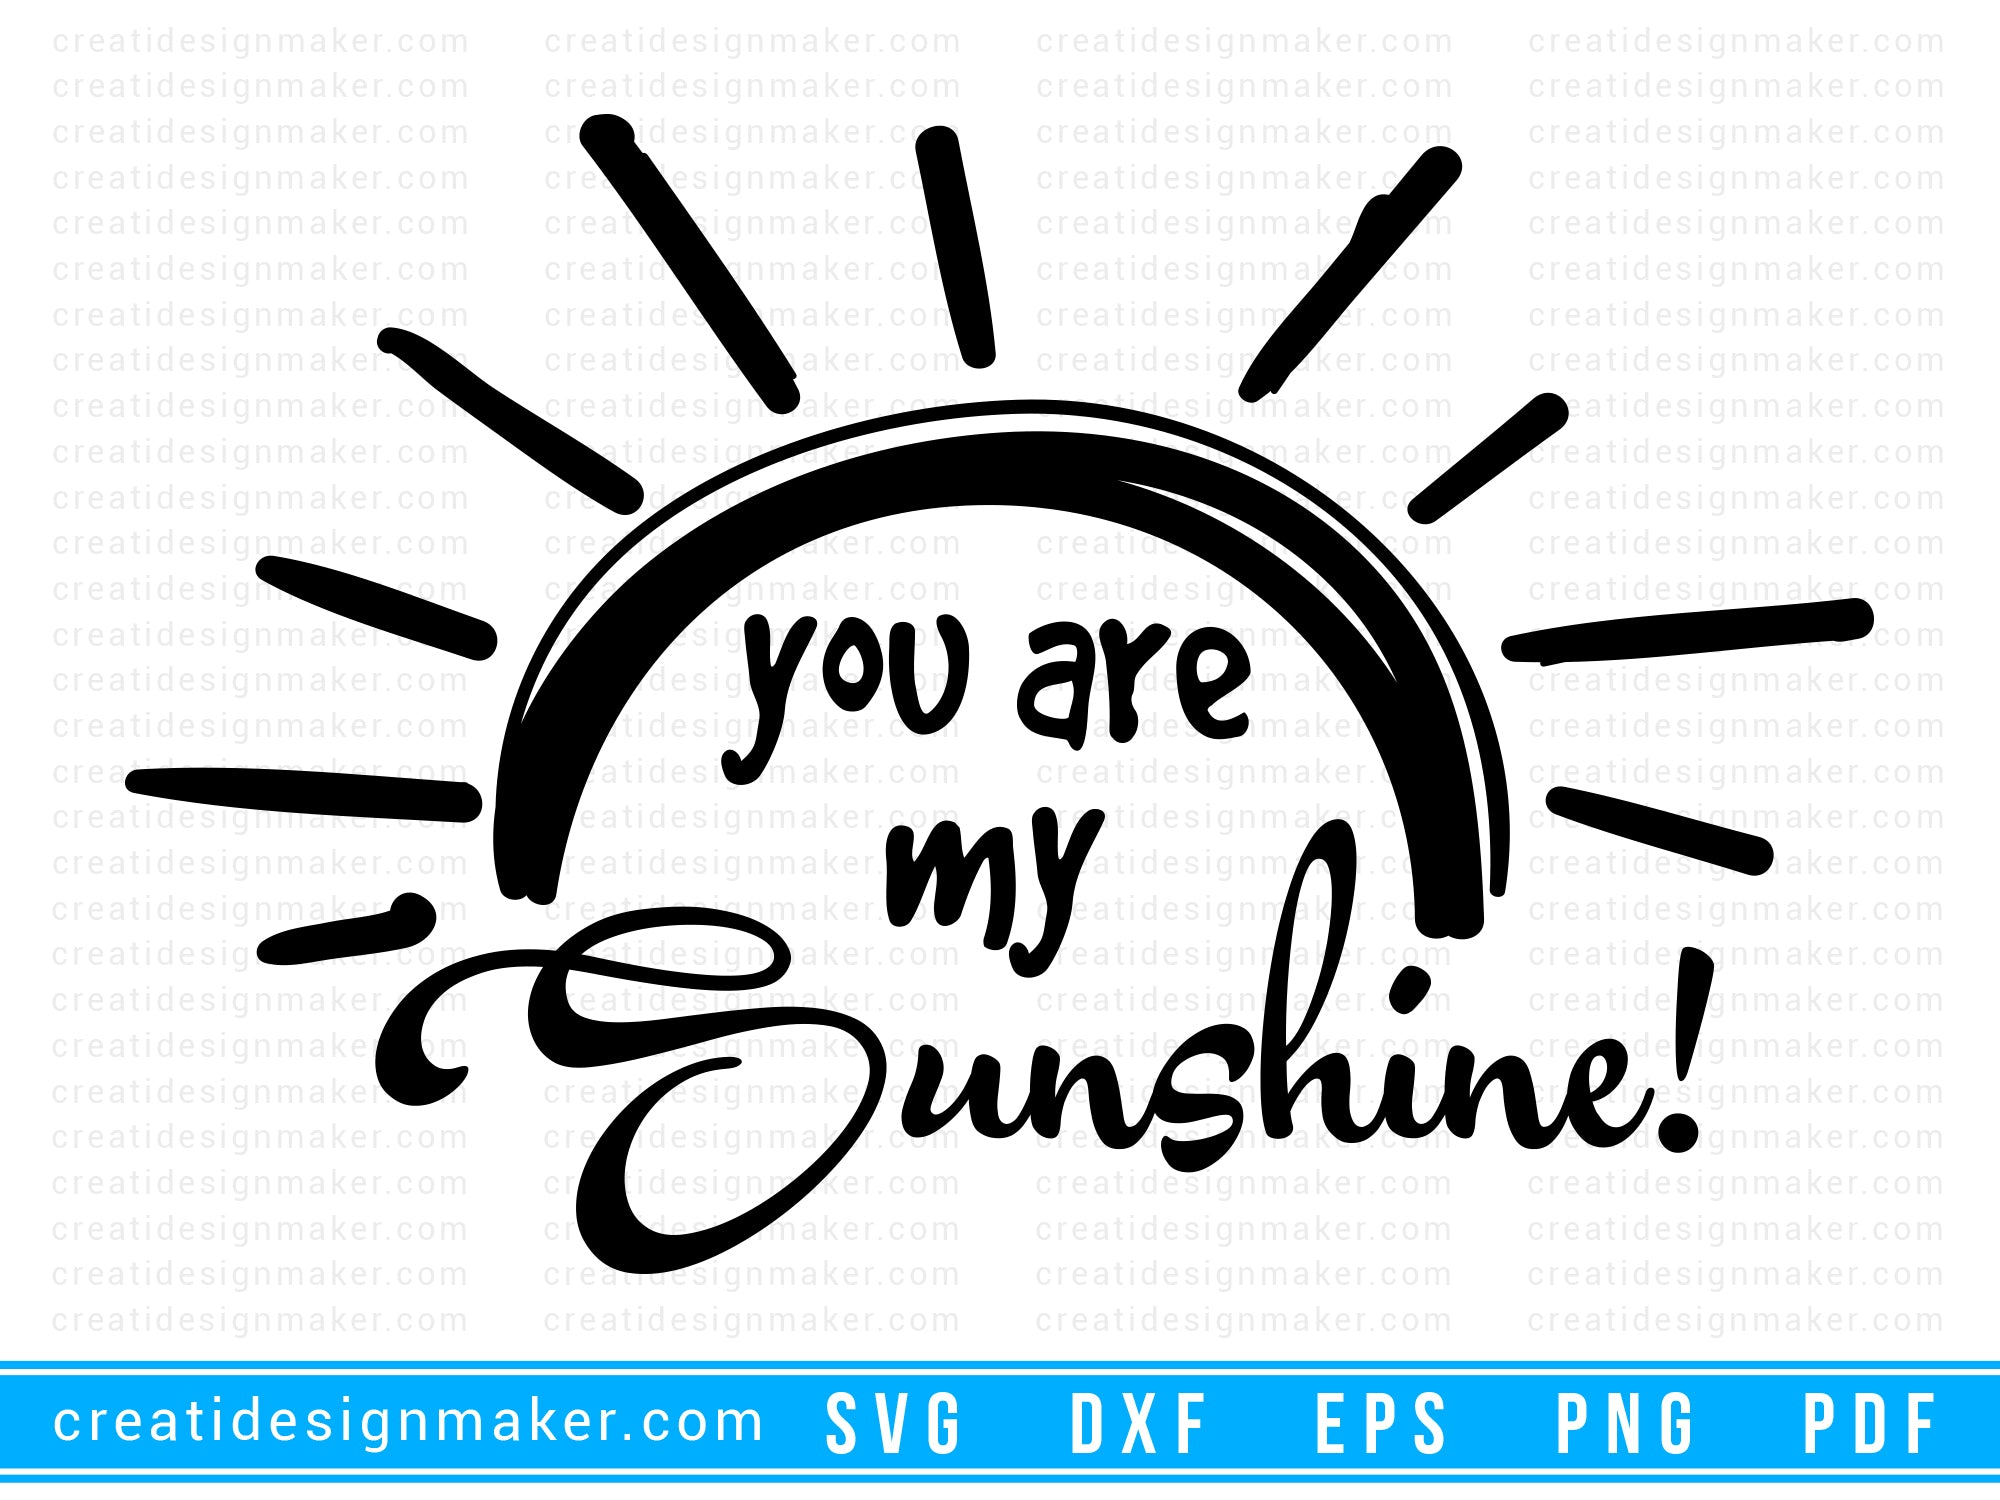 You are my sunshine summer svg Cut File For Cricut svg, dxf, png, eps, pdf Silhouette Printable Files